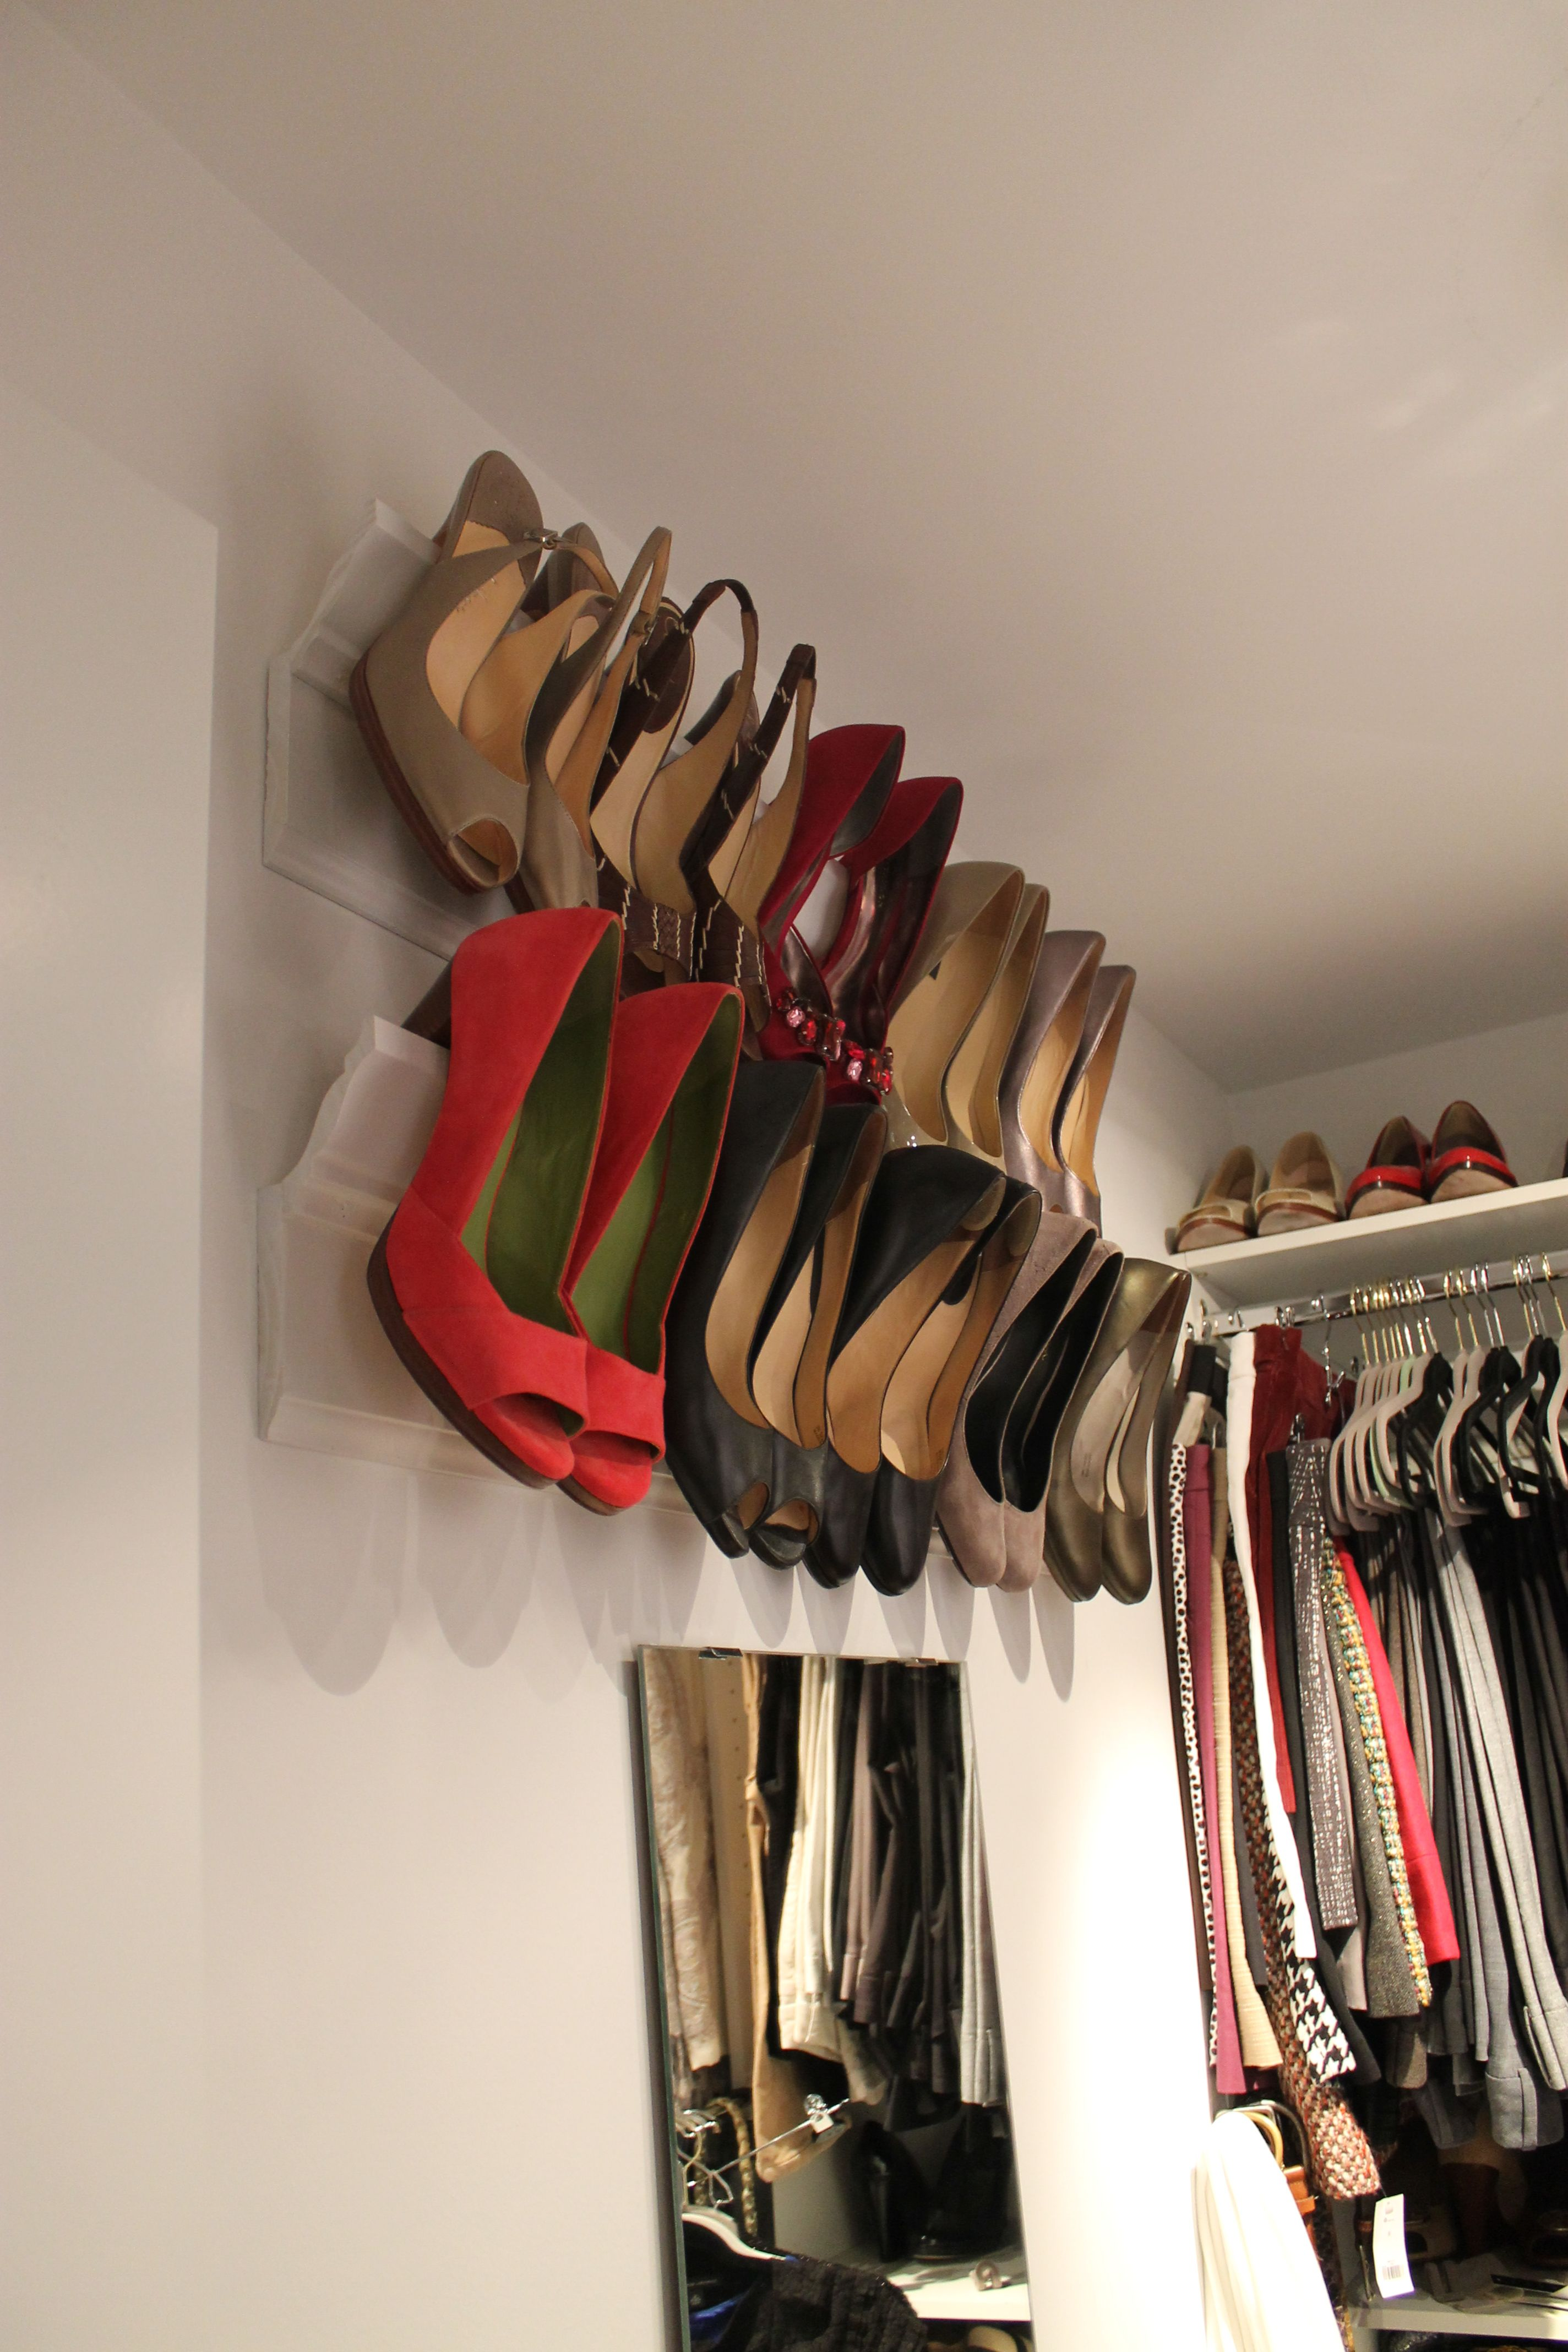 Crown Molding Shoe Shelves perfect space saver storage Now I need